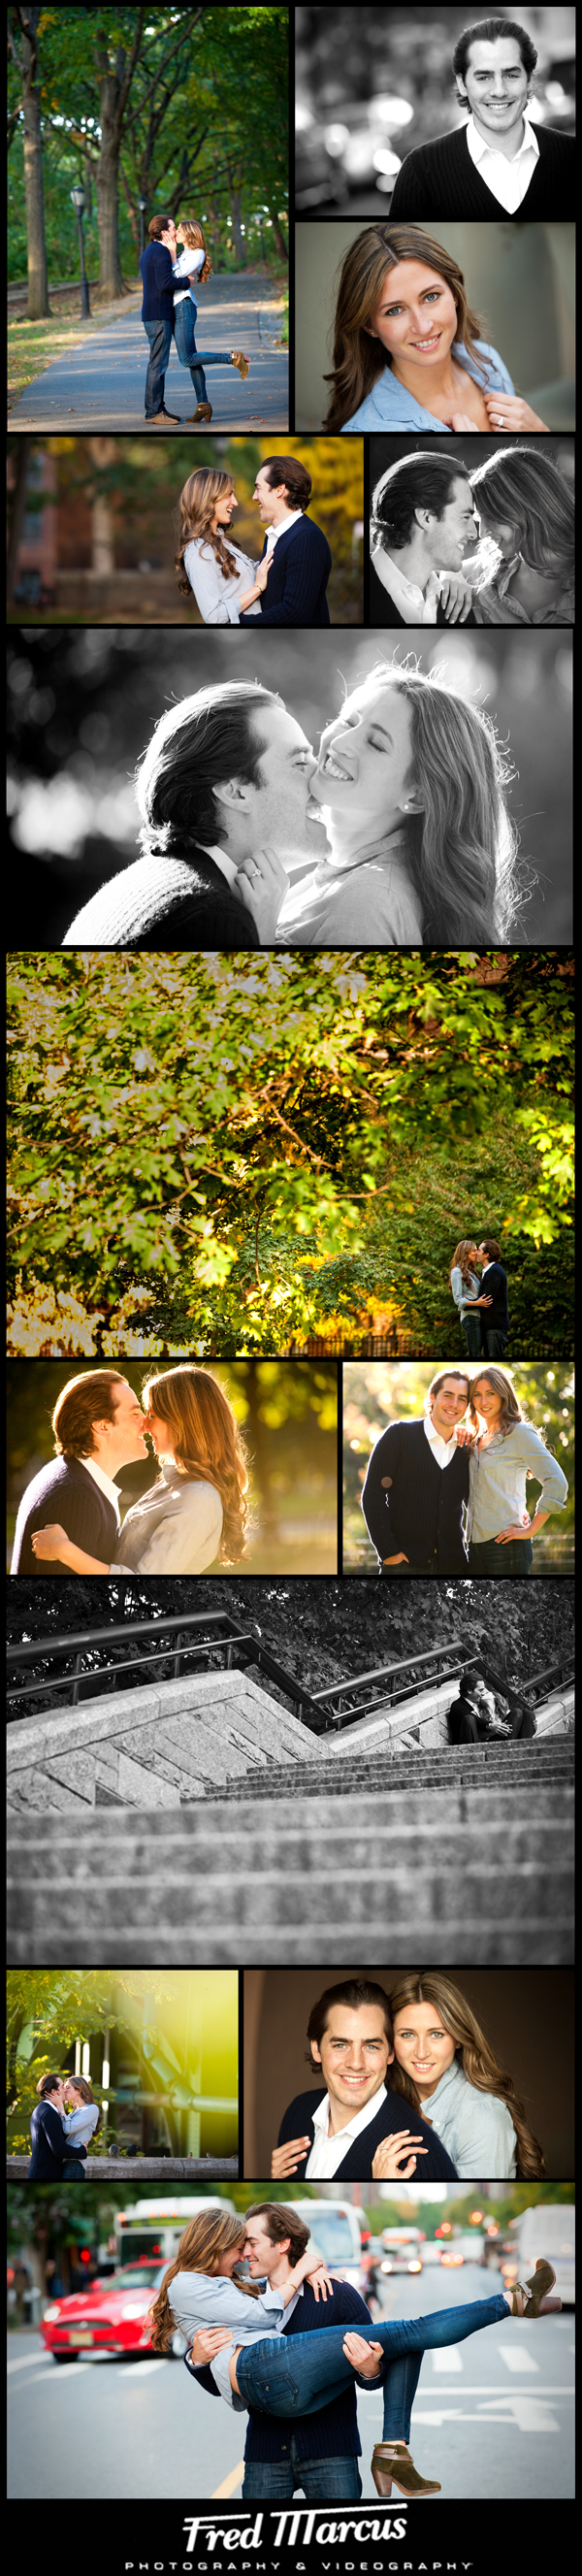 A Very Special Engagement Shoot